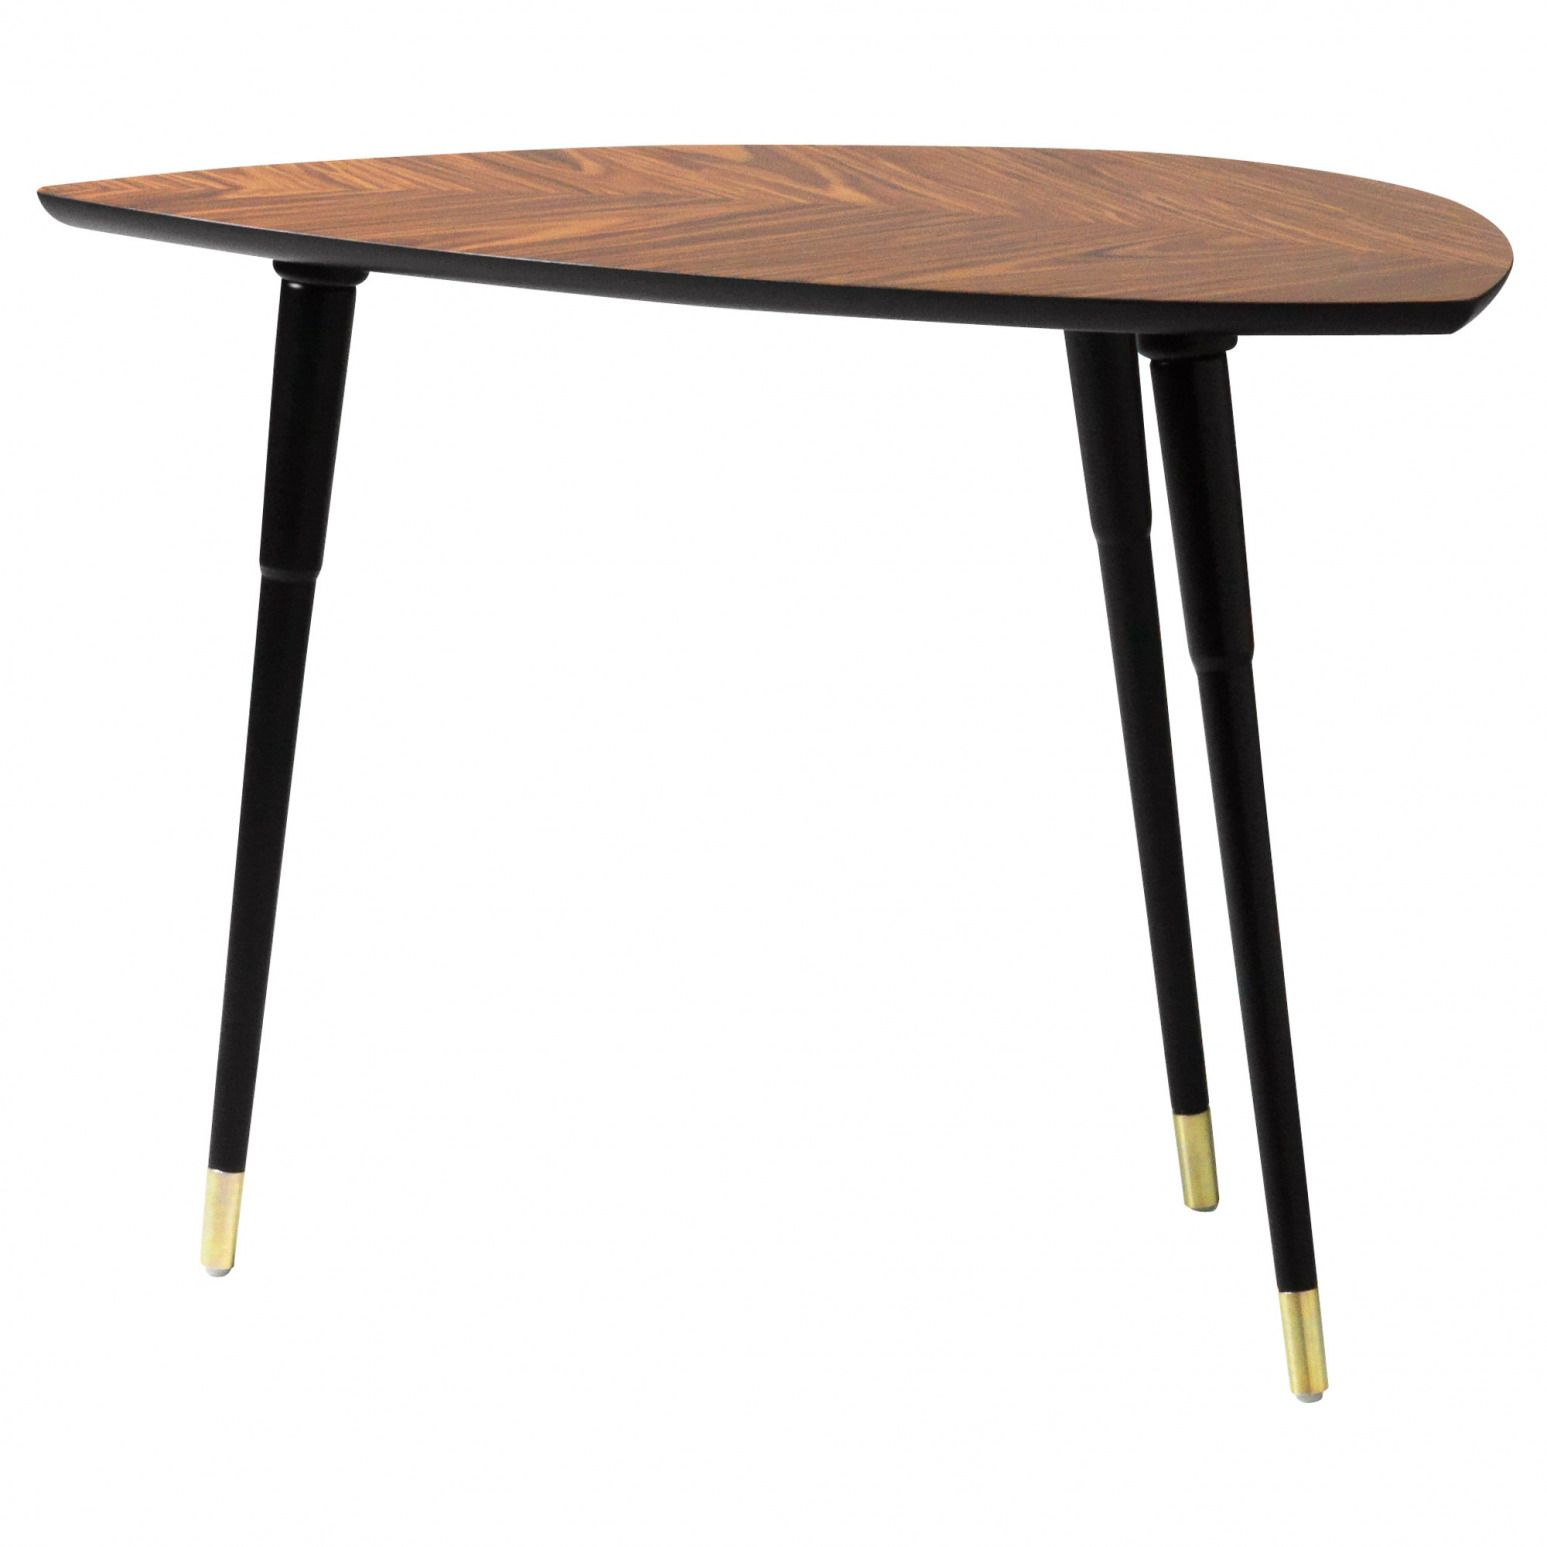 100 Half Round Table Ikea Best Quality Furniture Check More At Http